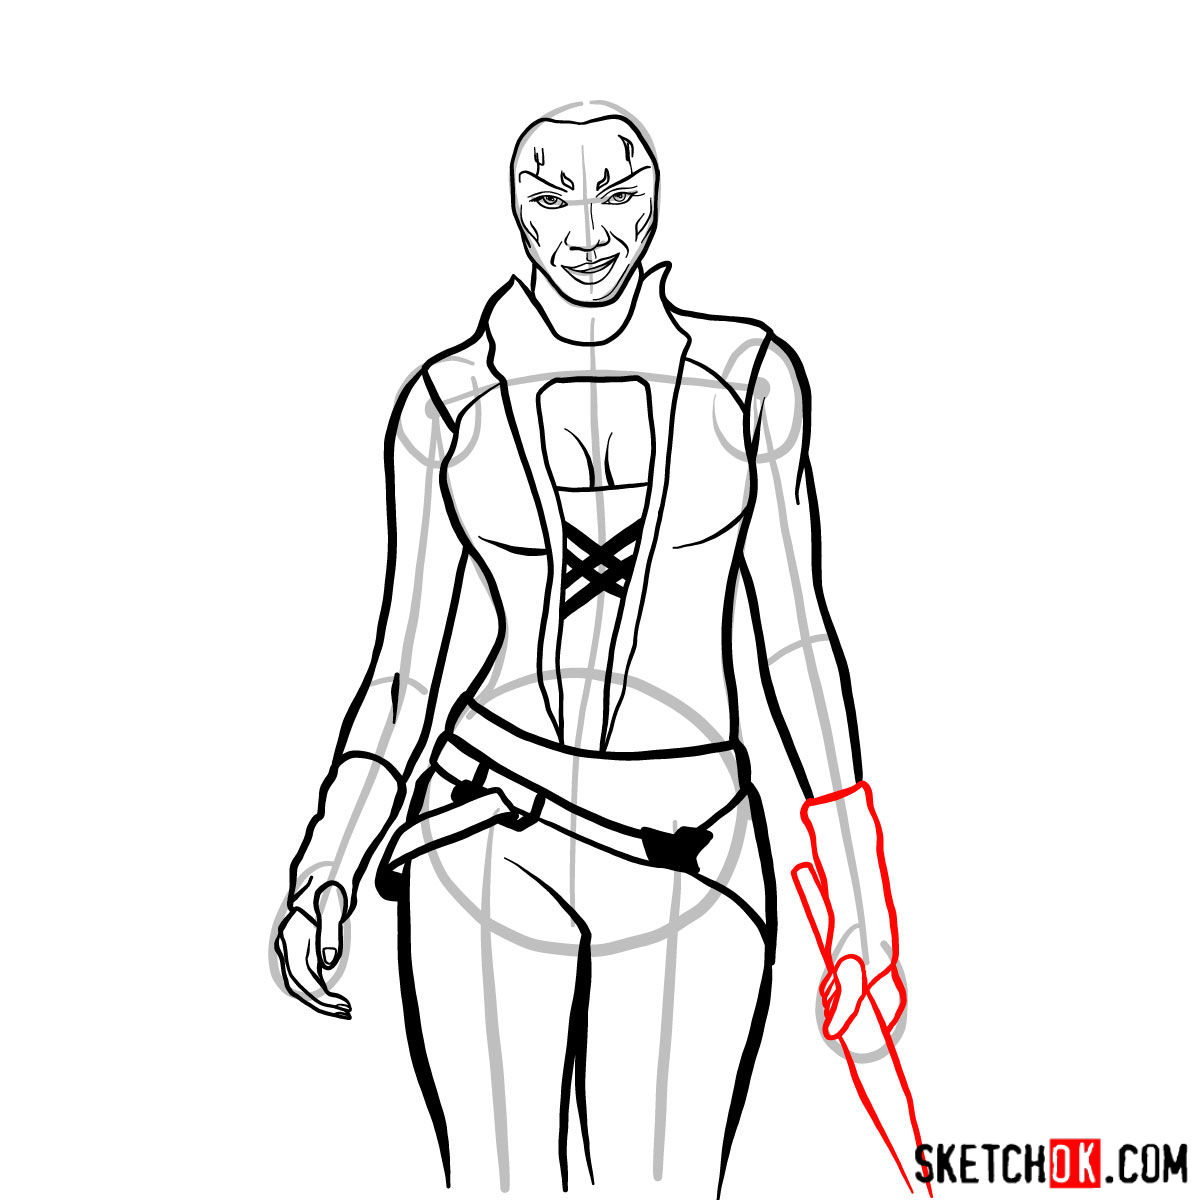 How to draw Gamora from Guardians of the Galaxy - step 11